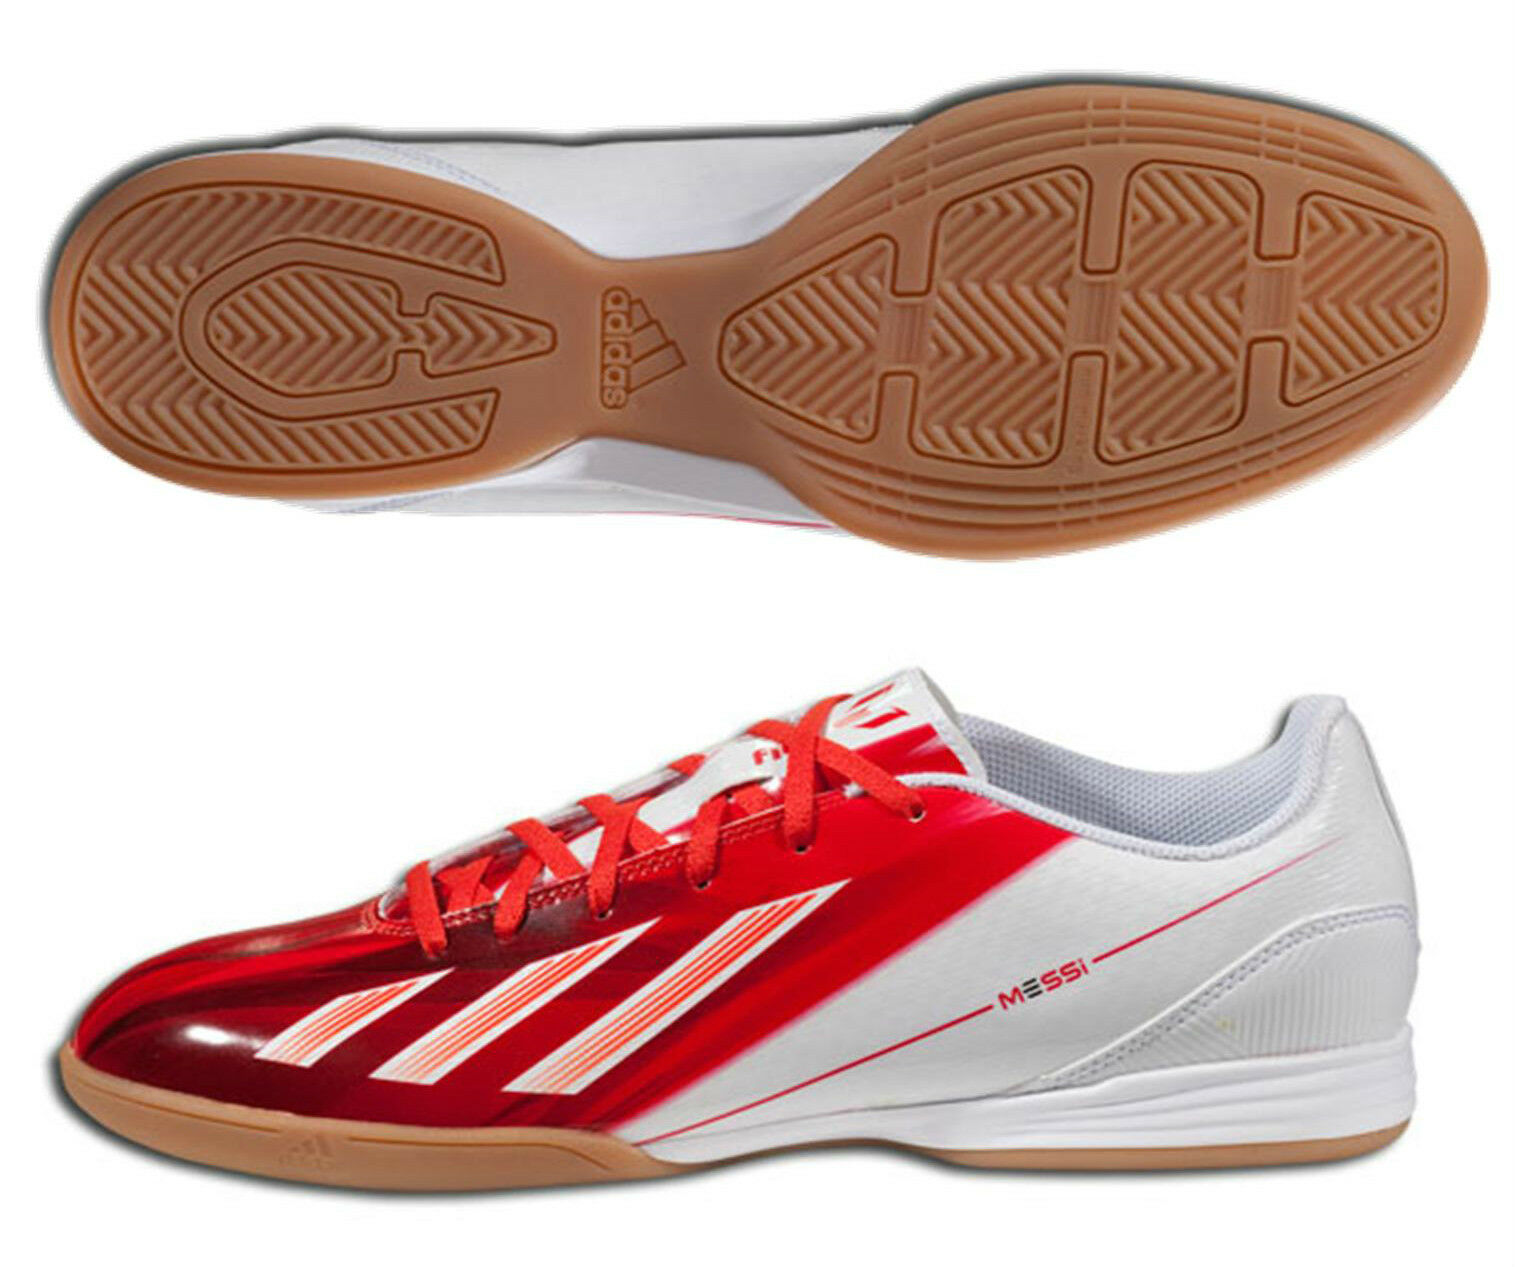 ADIDAS MESSI 1 F10 IN INDOOR SOCCER SHOES FUTSAL White Red.